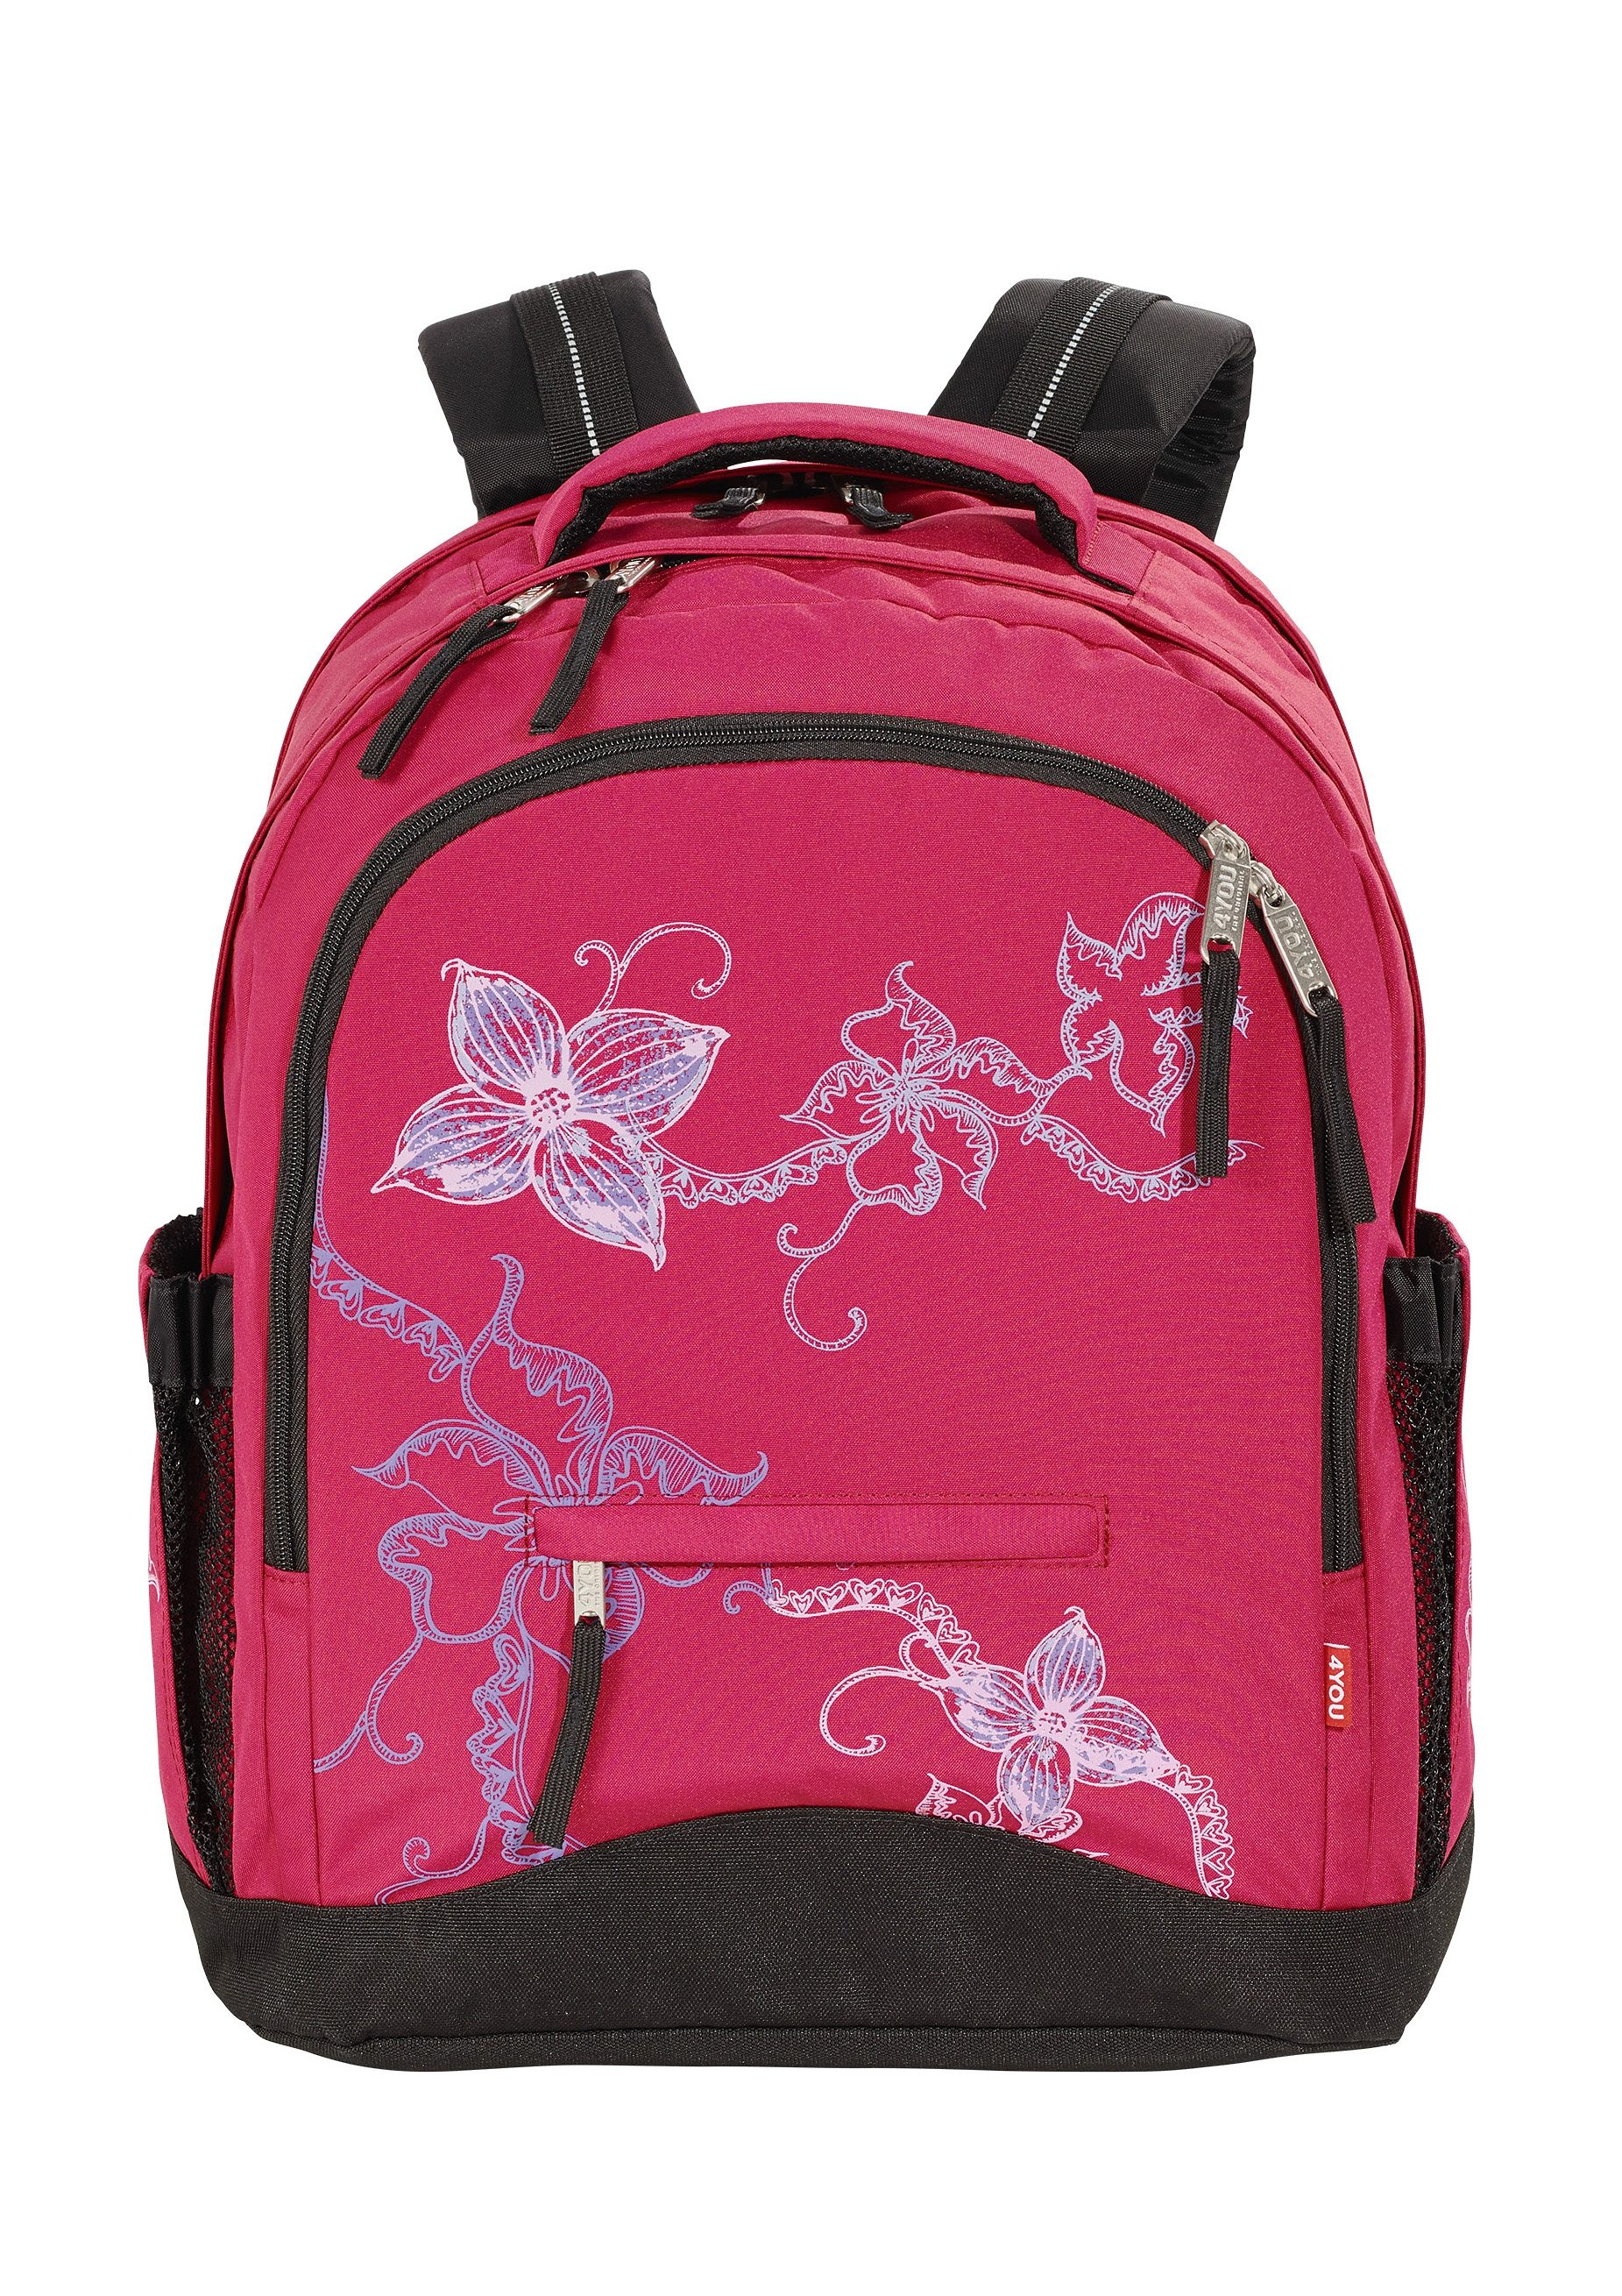 4YOU Schulrucksack, »Rucksack Compact - Flower Lace«